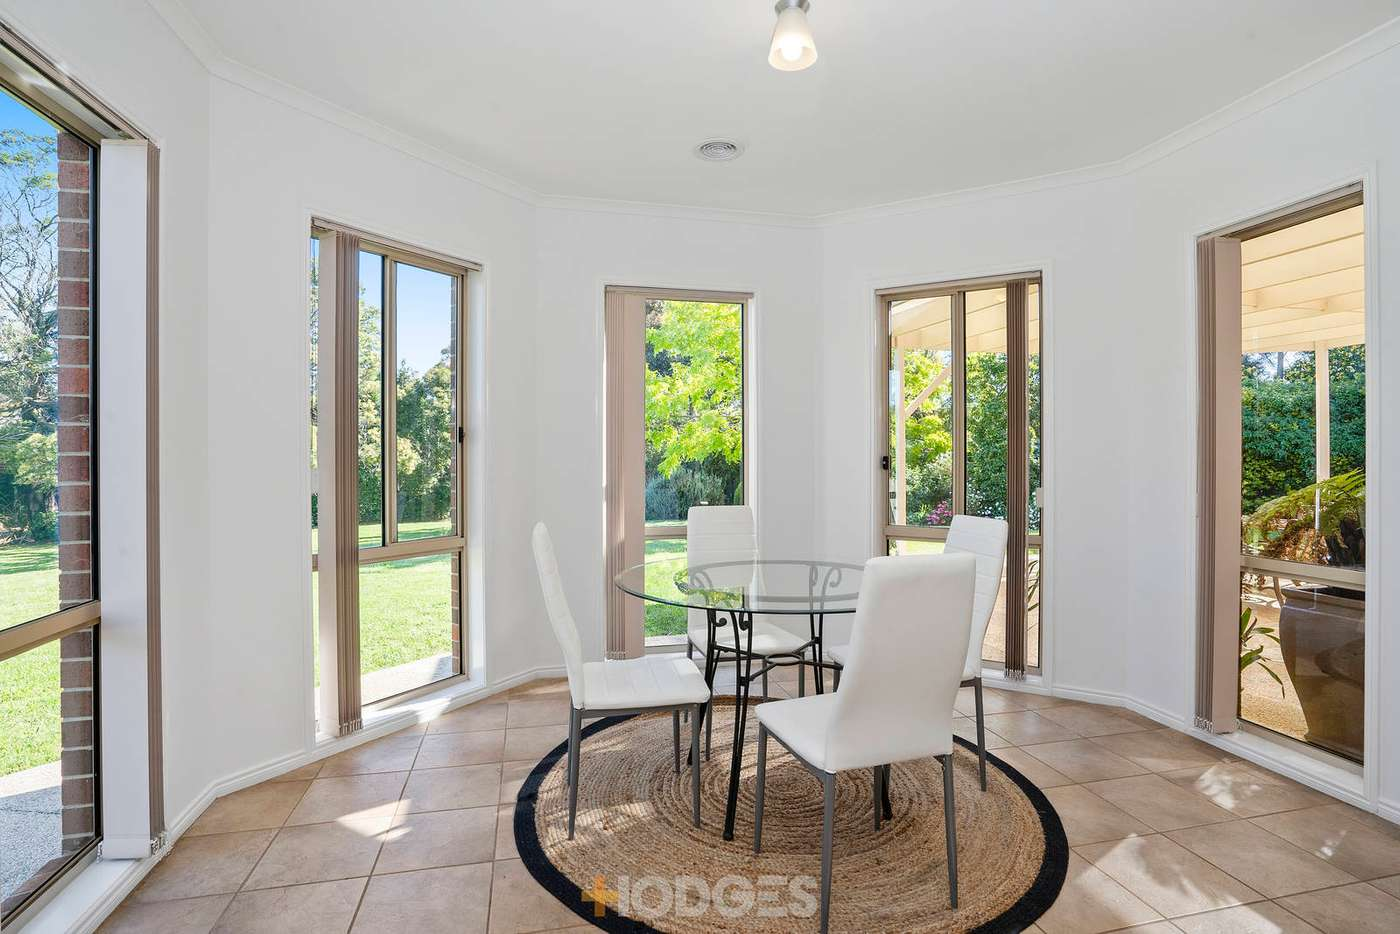 Sixth view of Homely house listing, 3 Sweeney Court, Highton VIC 3216